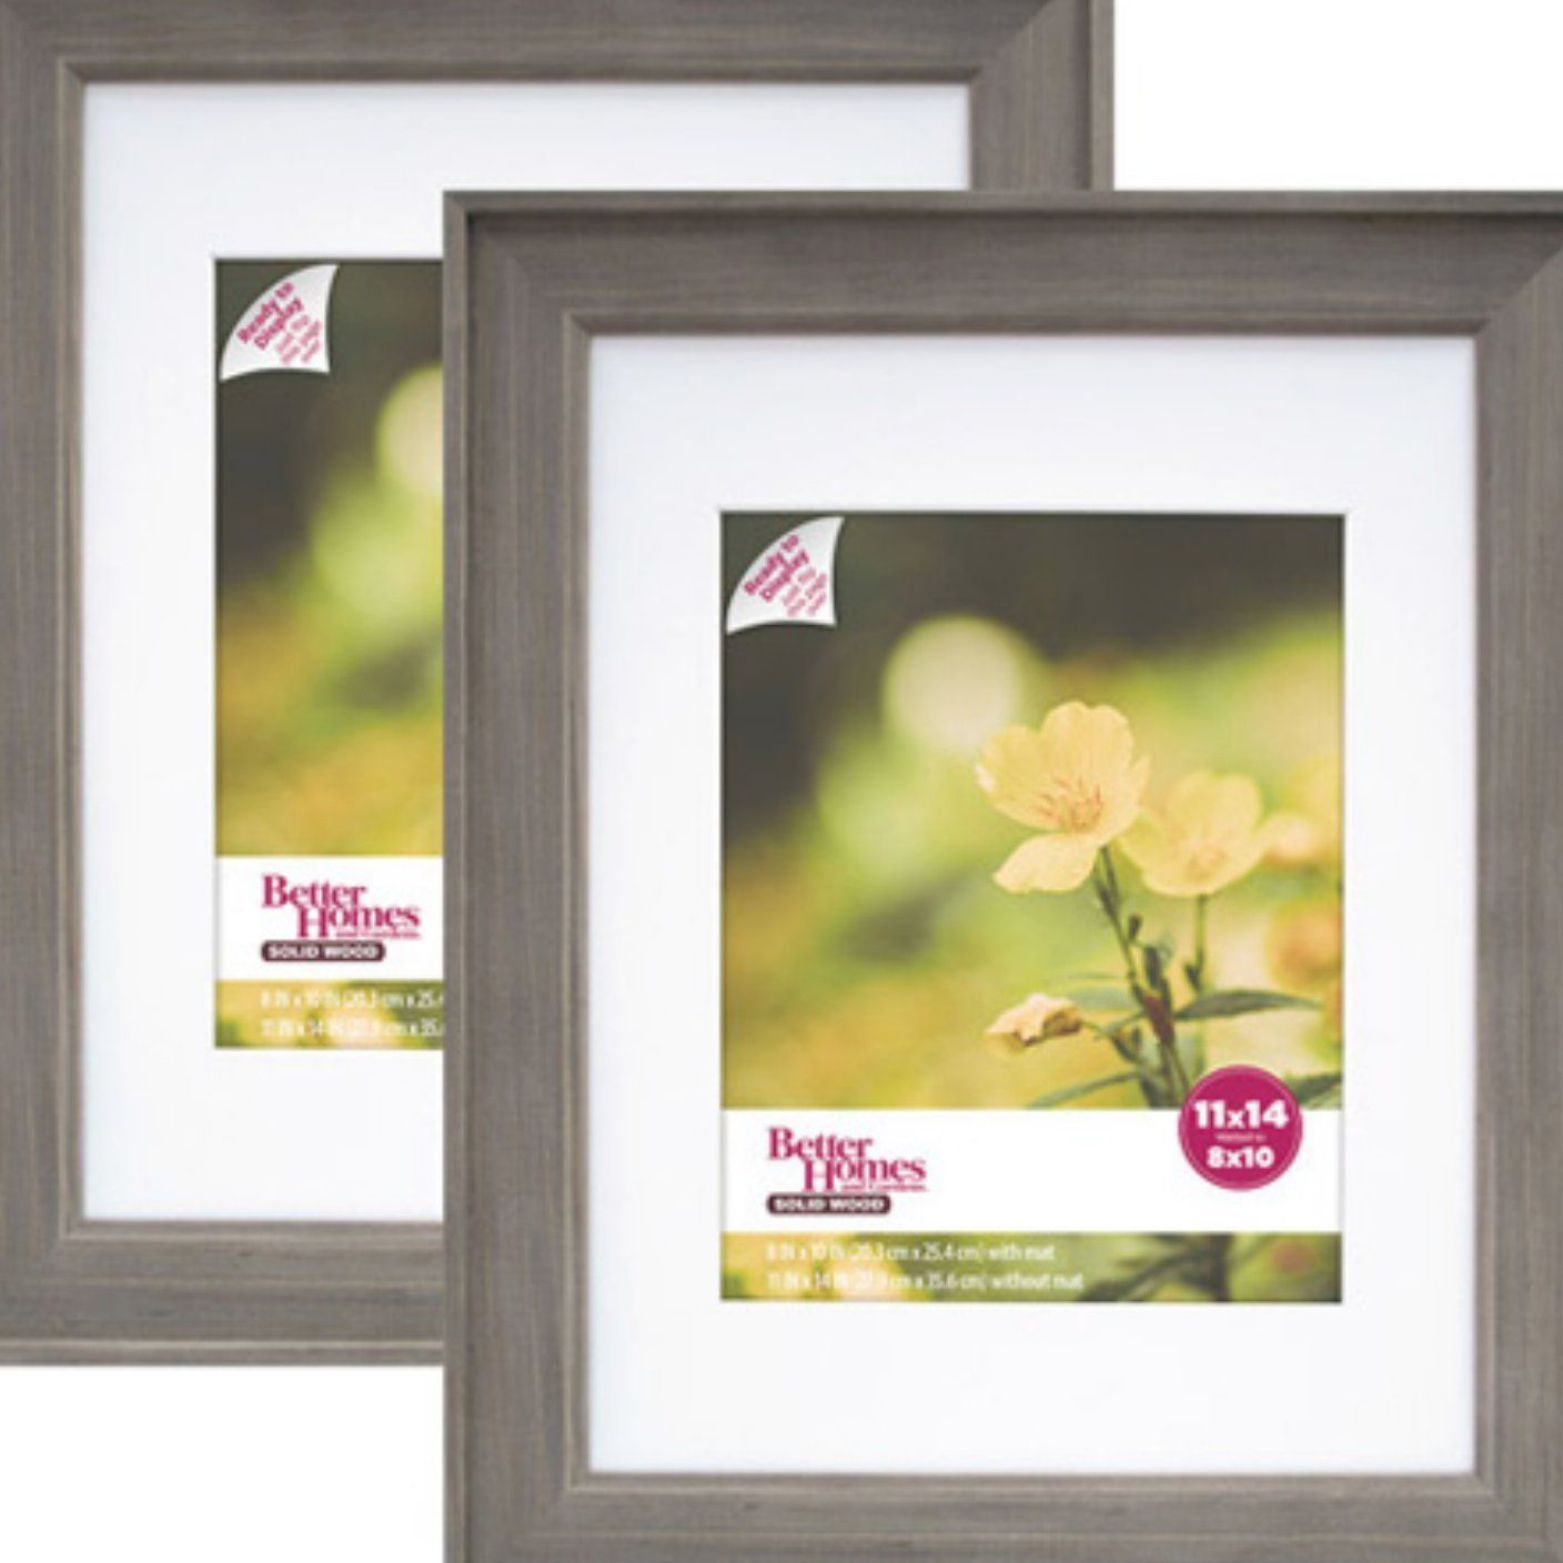 1d951d0f6fa4139f93385533f4dc7be5 - Better Homes And Gardens 4 Opening Rustic Windowpane Collage Frame